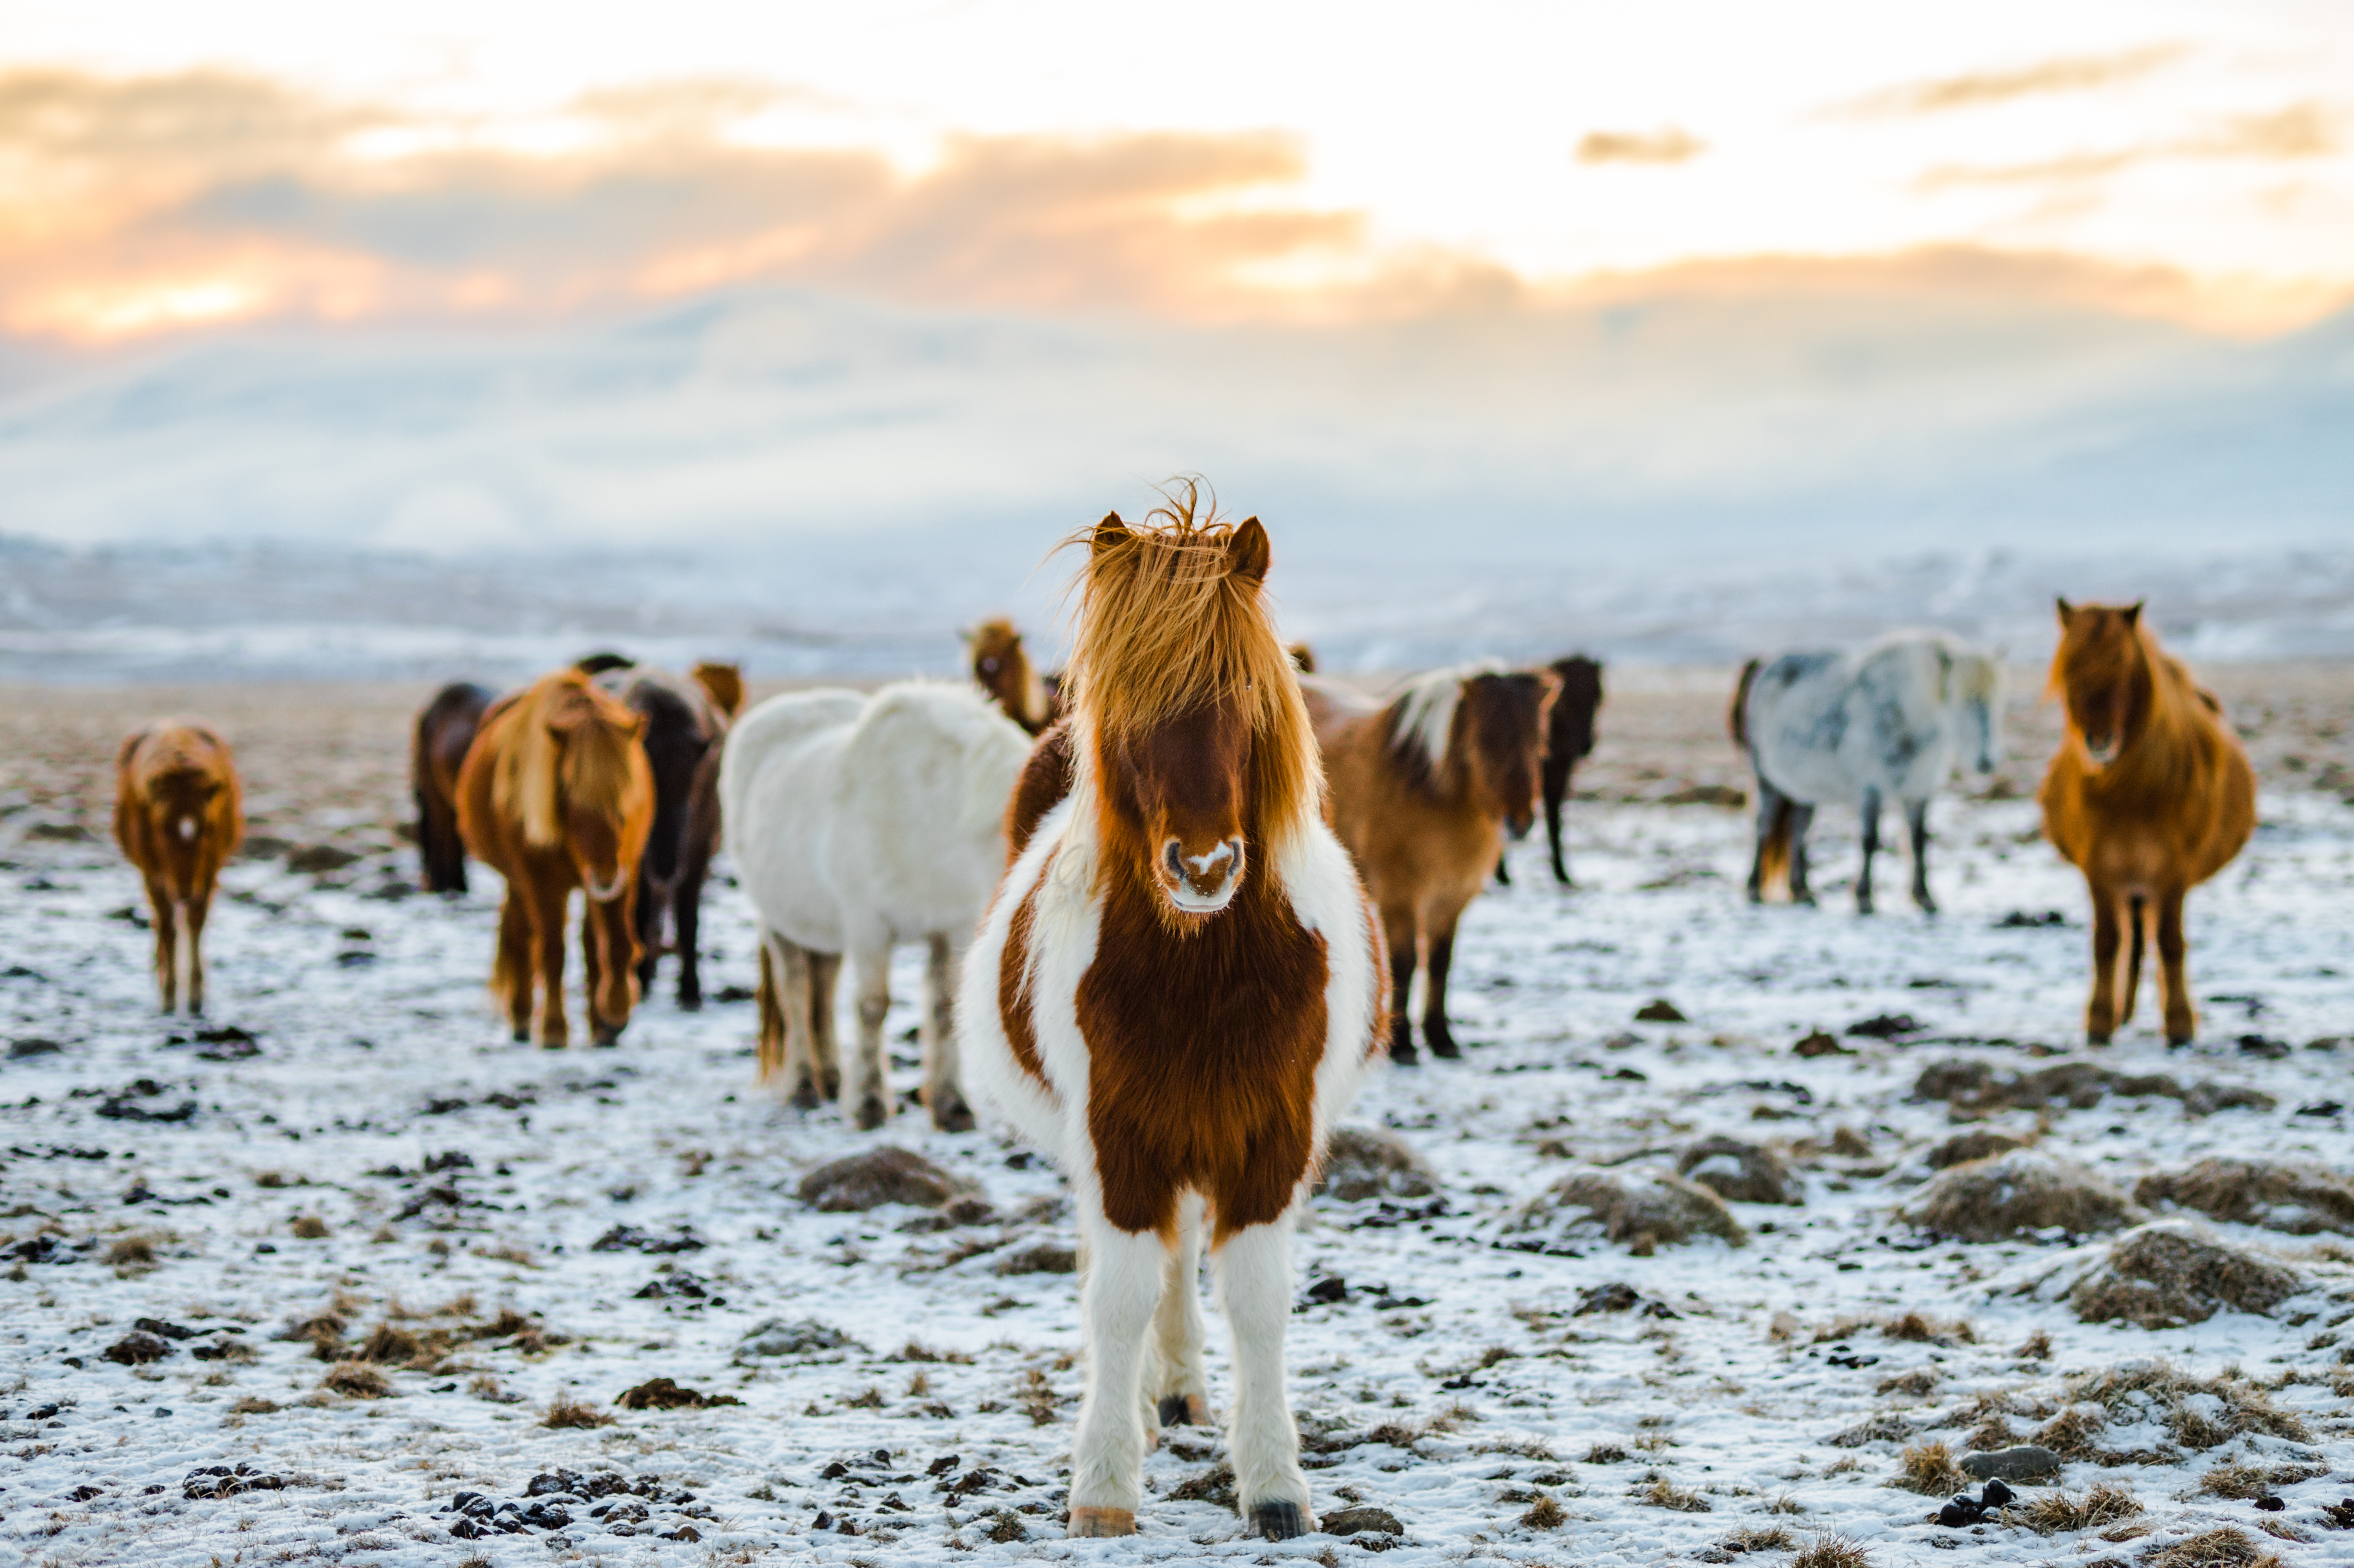 Herd Of White And Brown Donkeys On Snow Covered Land